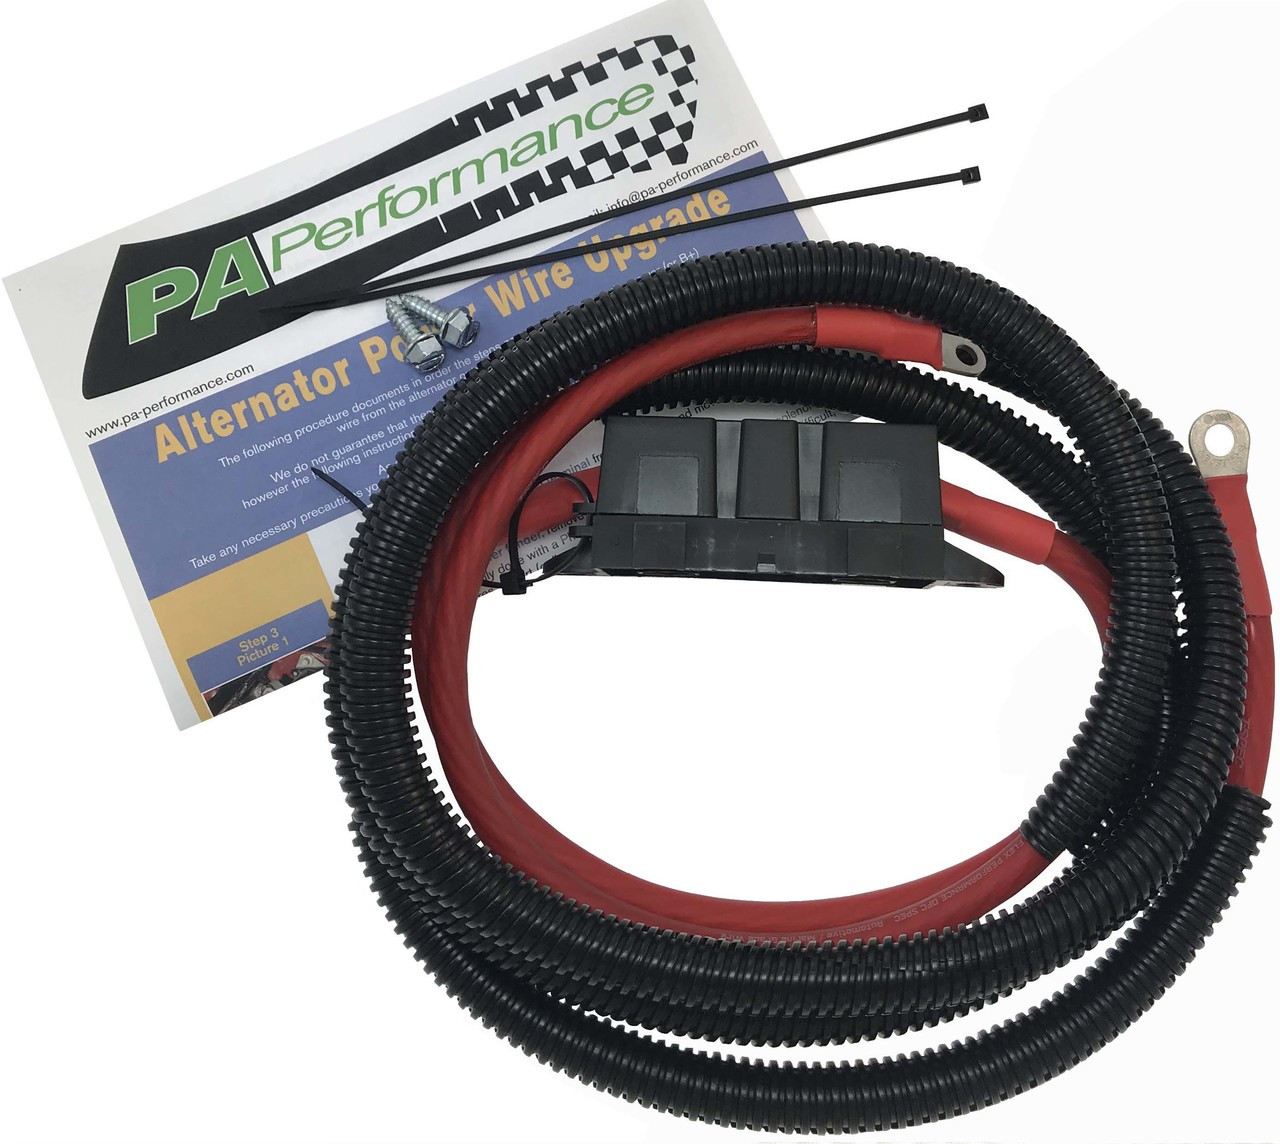 This is a complete kit to upgrade the main power feed wire from the alternator to the vehicle on most Fords